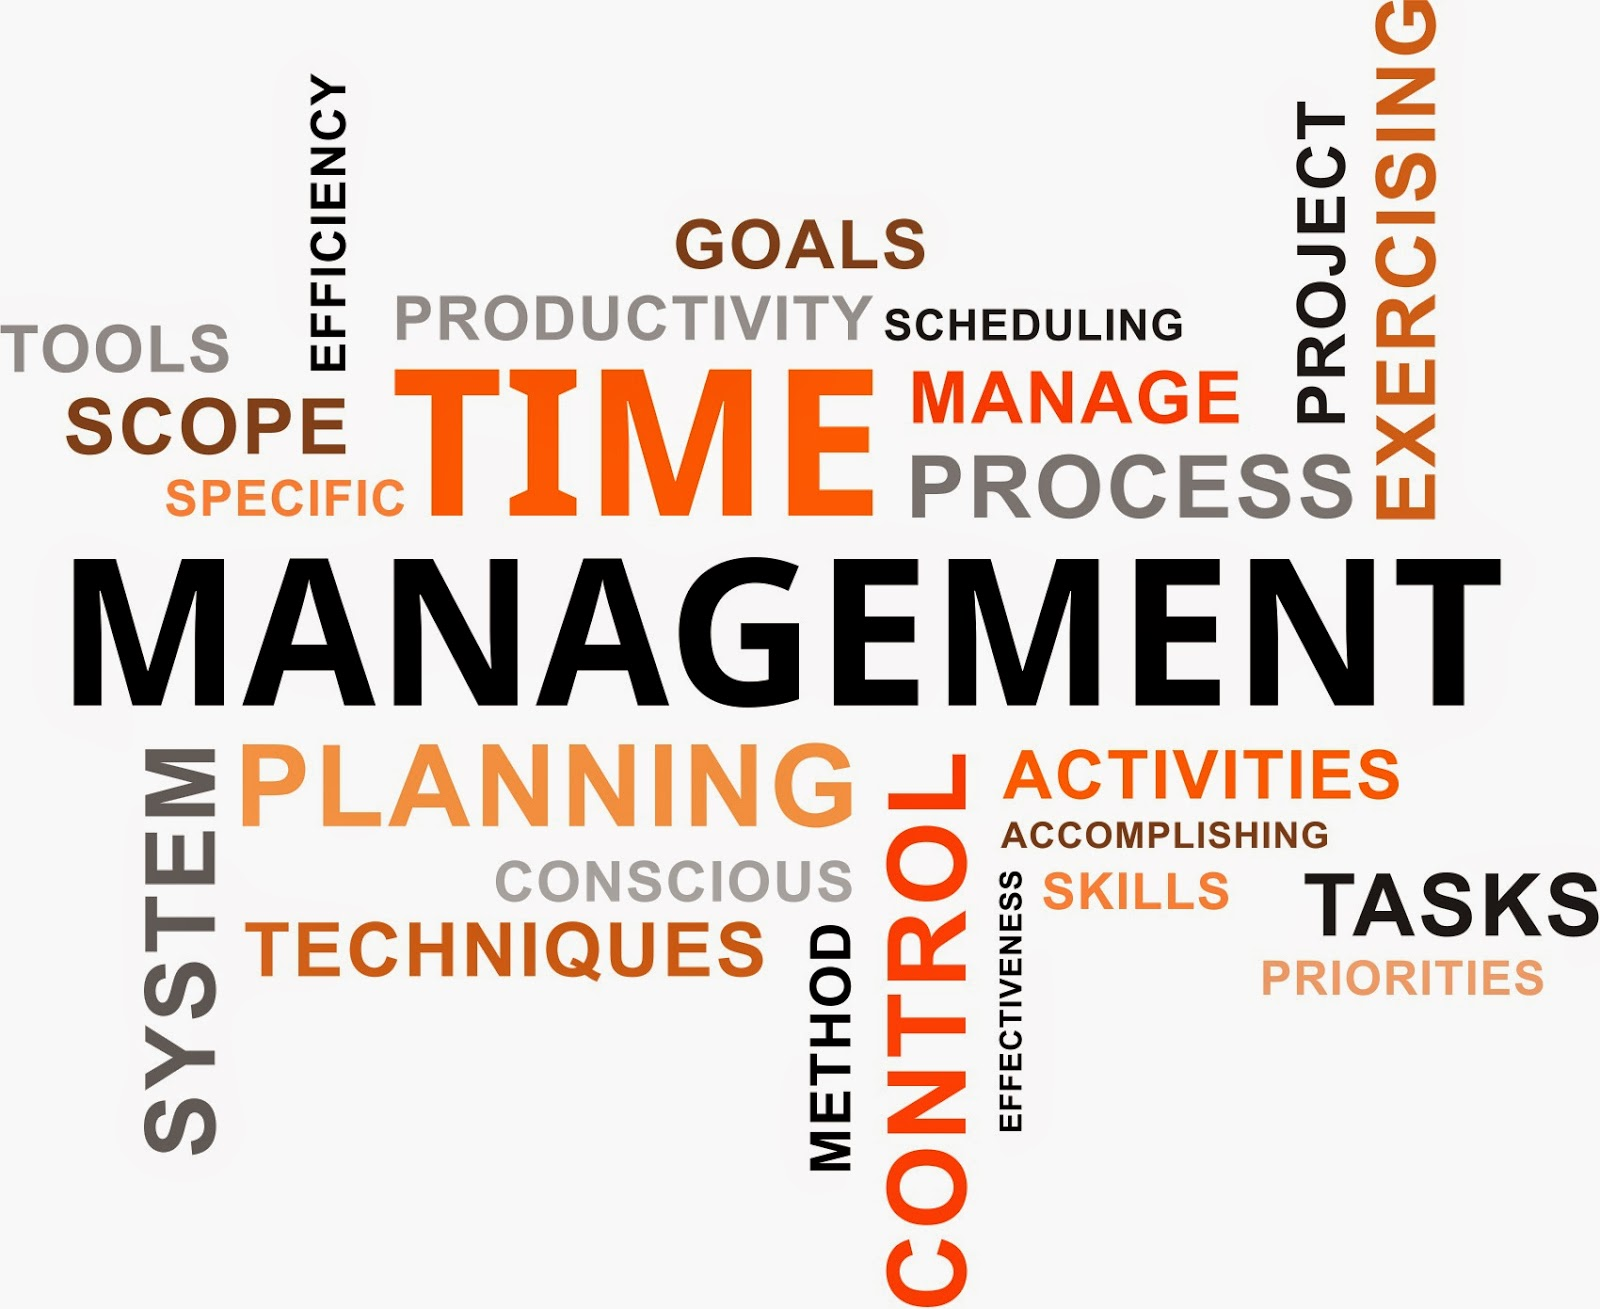 operation magement Operations management is chiefly concerned with planning, organizing and supervising in the contexts of production, manufacturing or the provision of services this article explains what operations management involves and what skills can make you a successful operations manager.